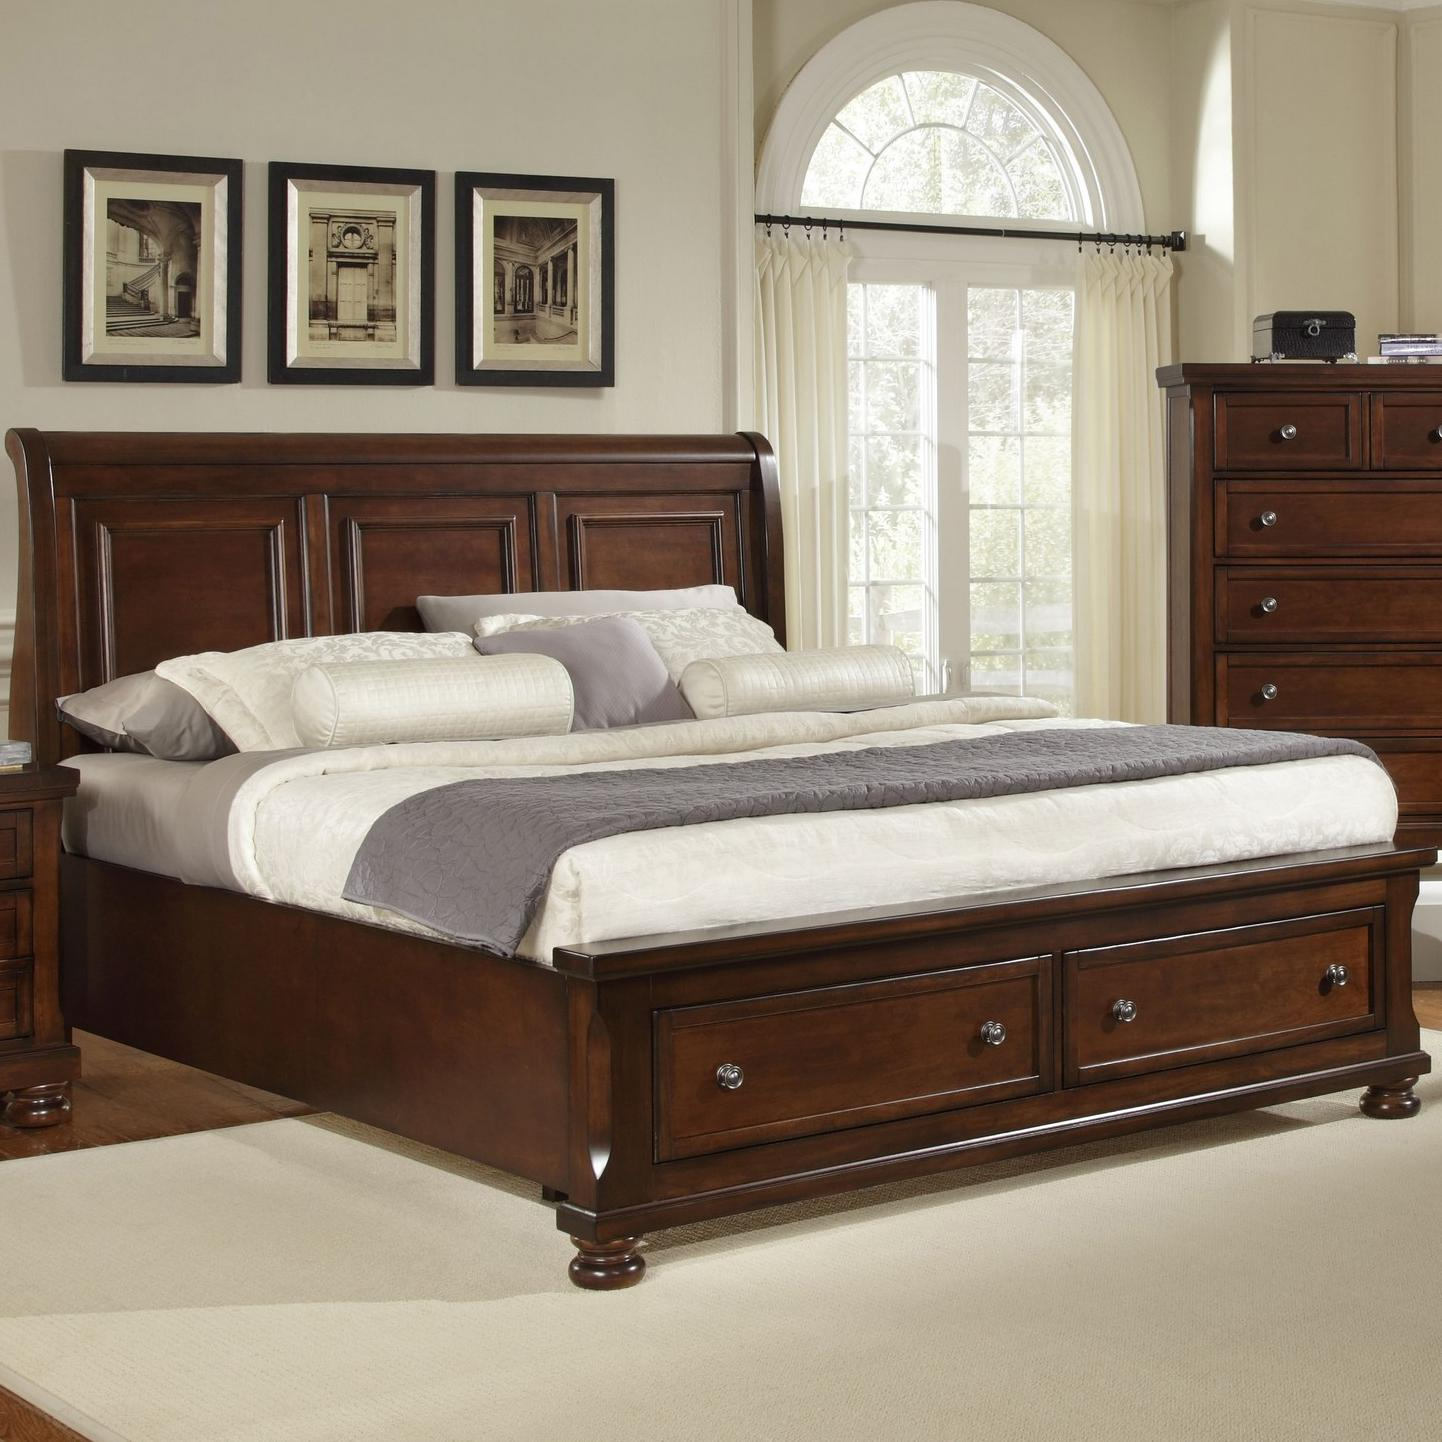 Very Low Platform Bed Vaughan Bassett Reflections King Storage Bed With Sleigh